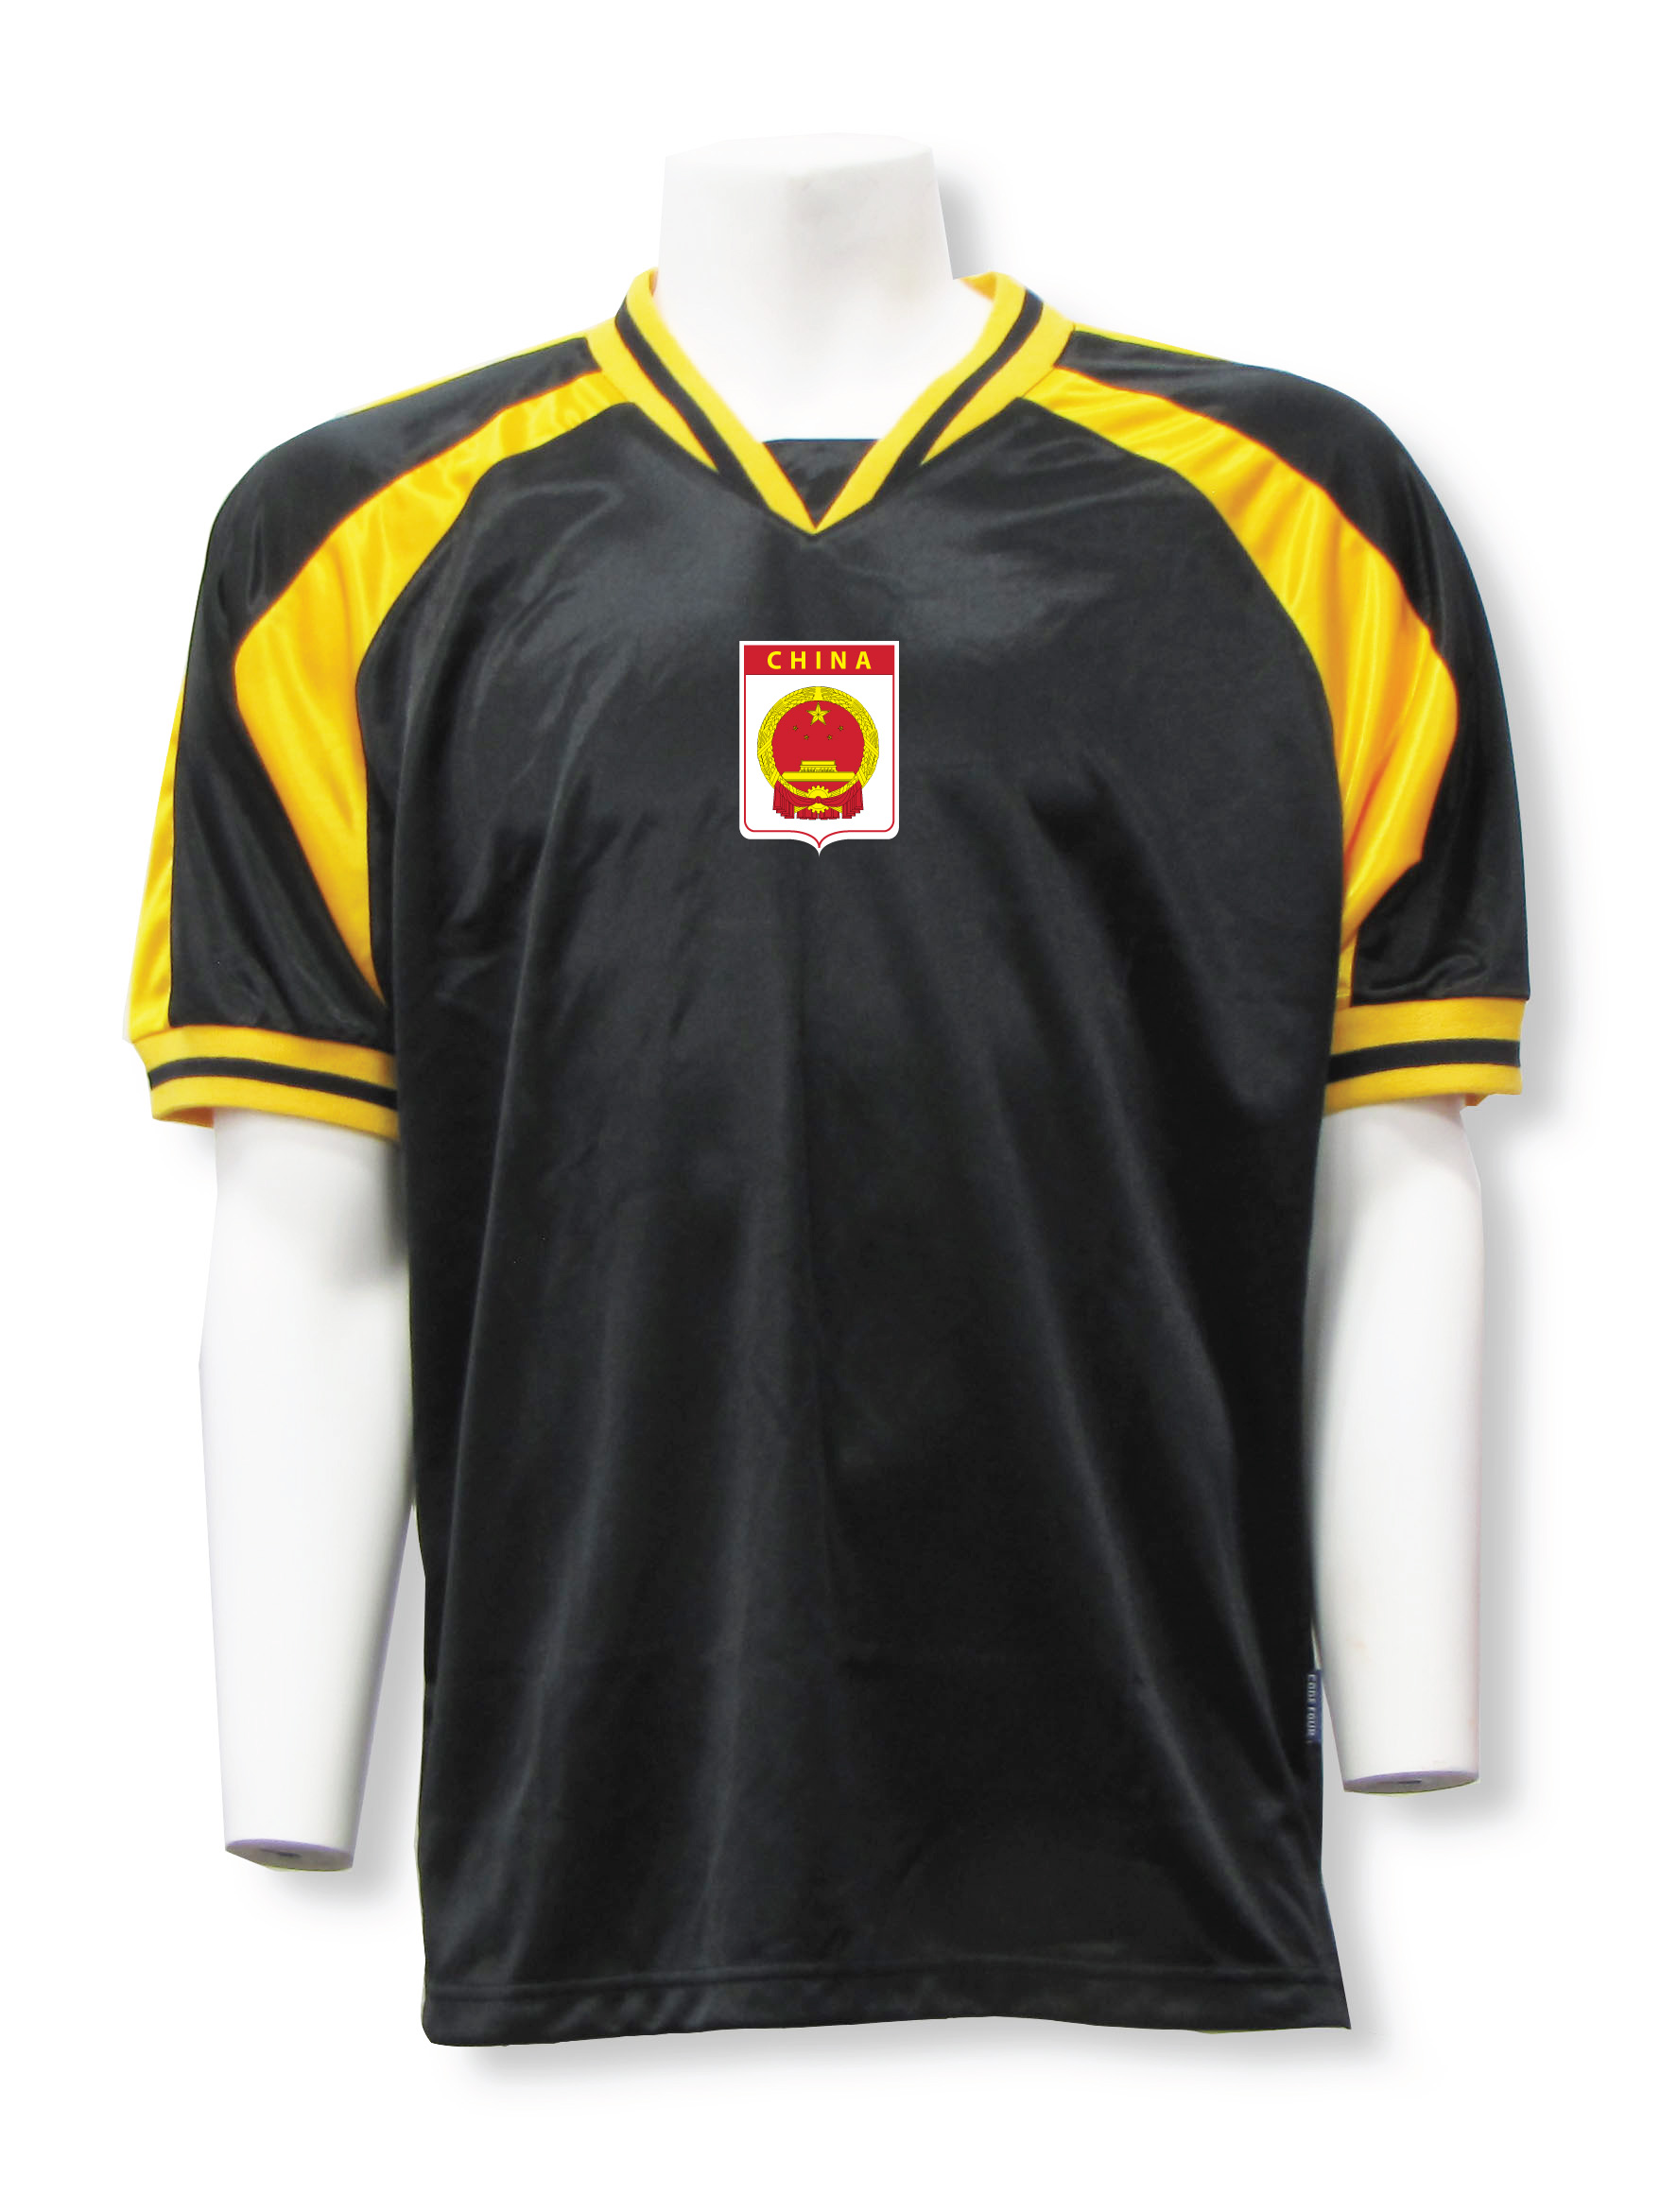 China soccer jersey in black/gold Spitfire